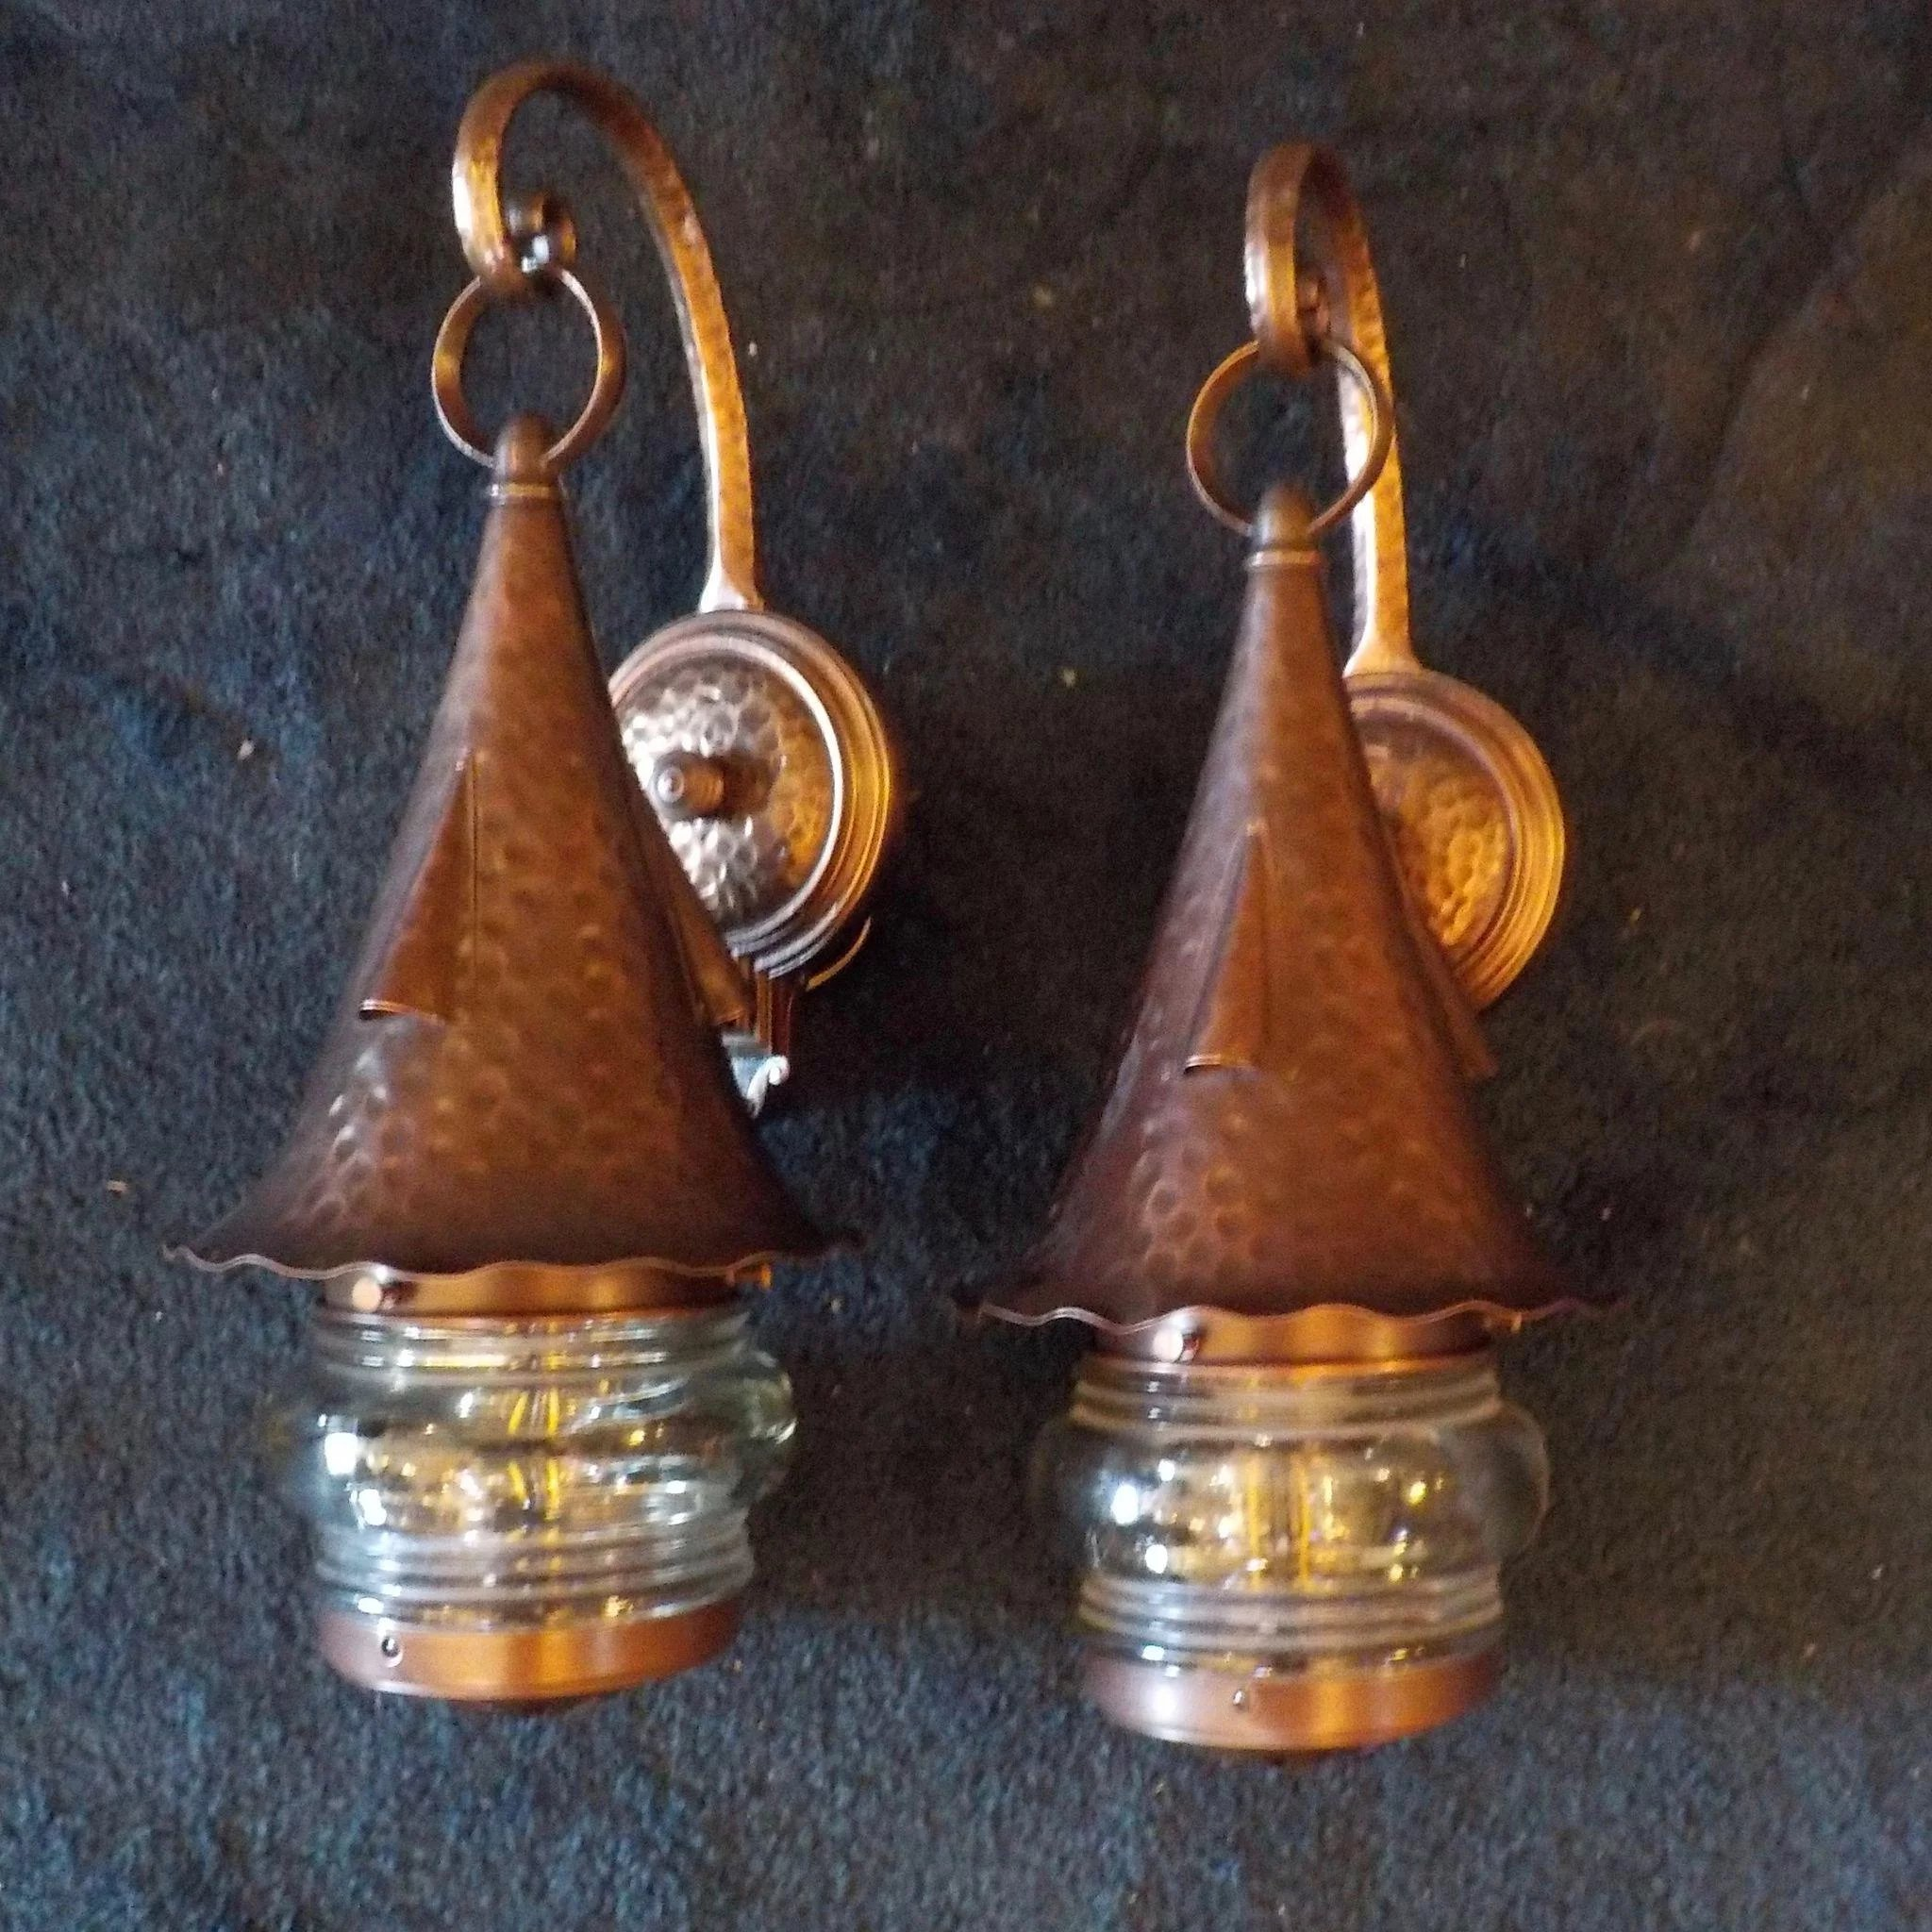 Lightolier Copper And Cast Bronze Porch Lights With Magnifying Lenses Sherlocks Antique